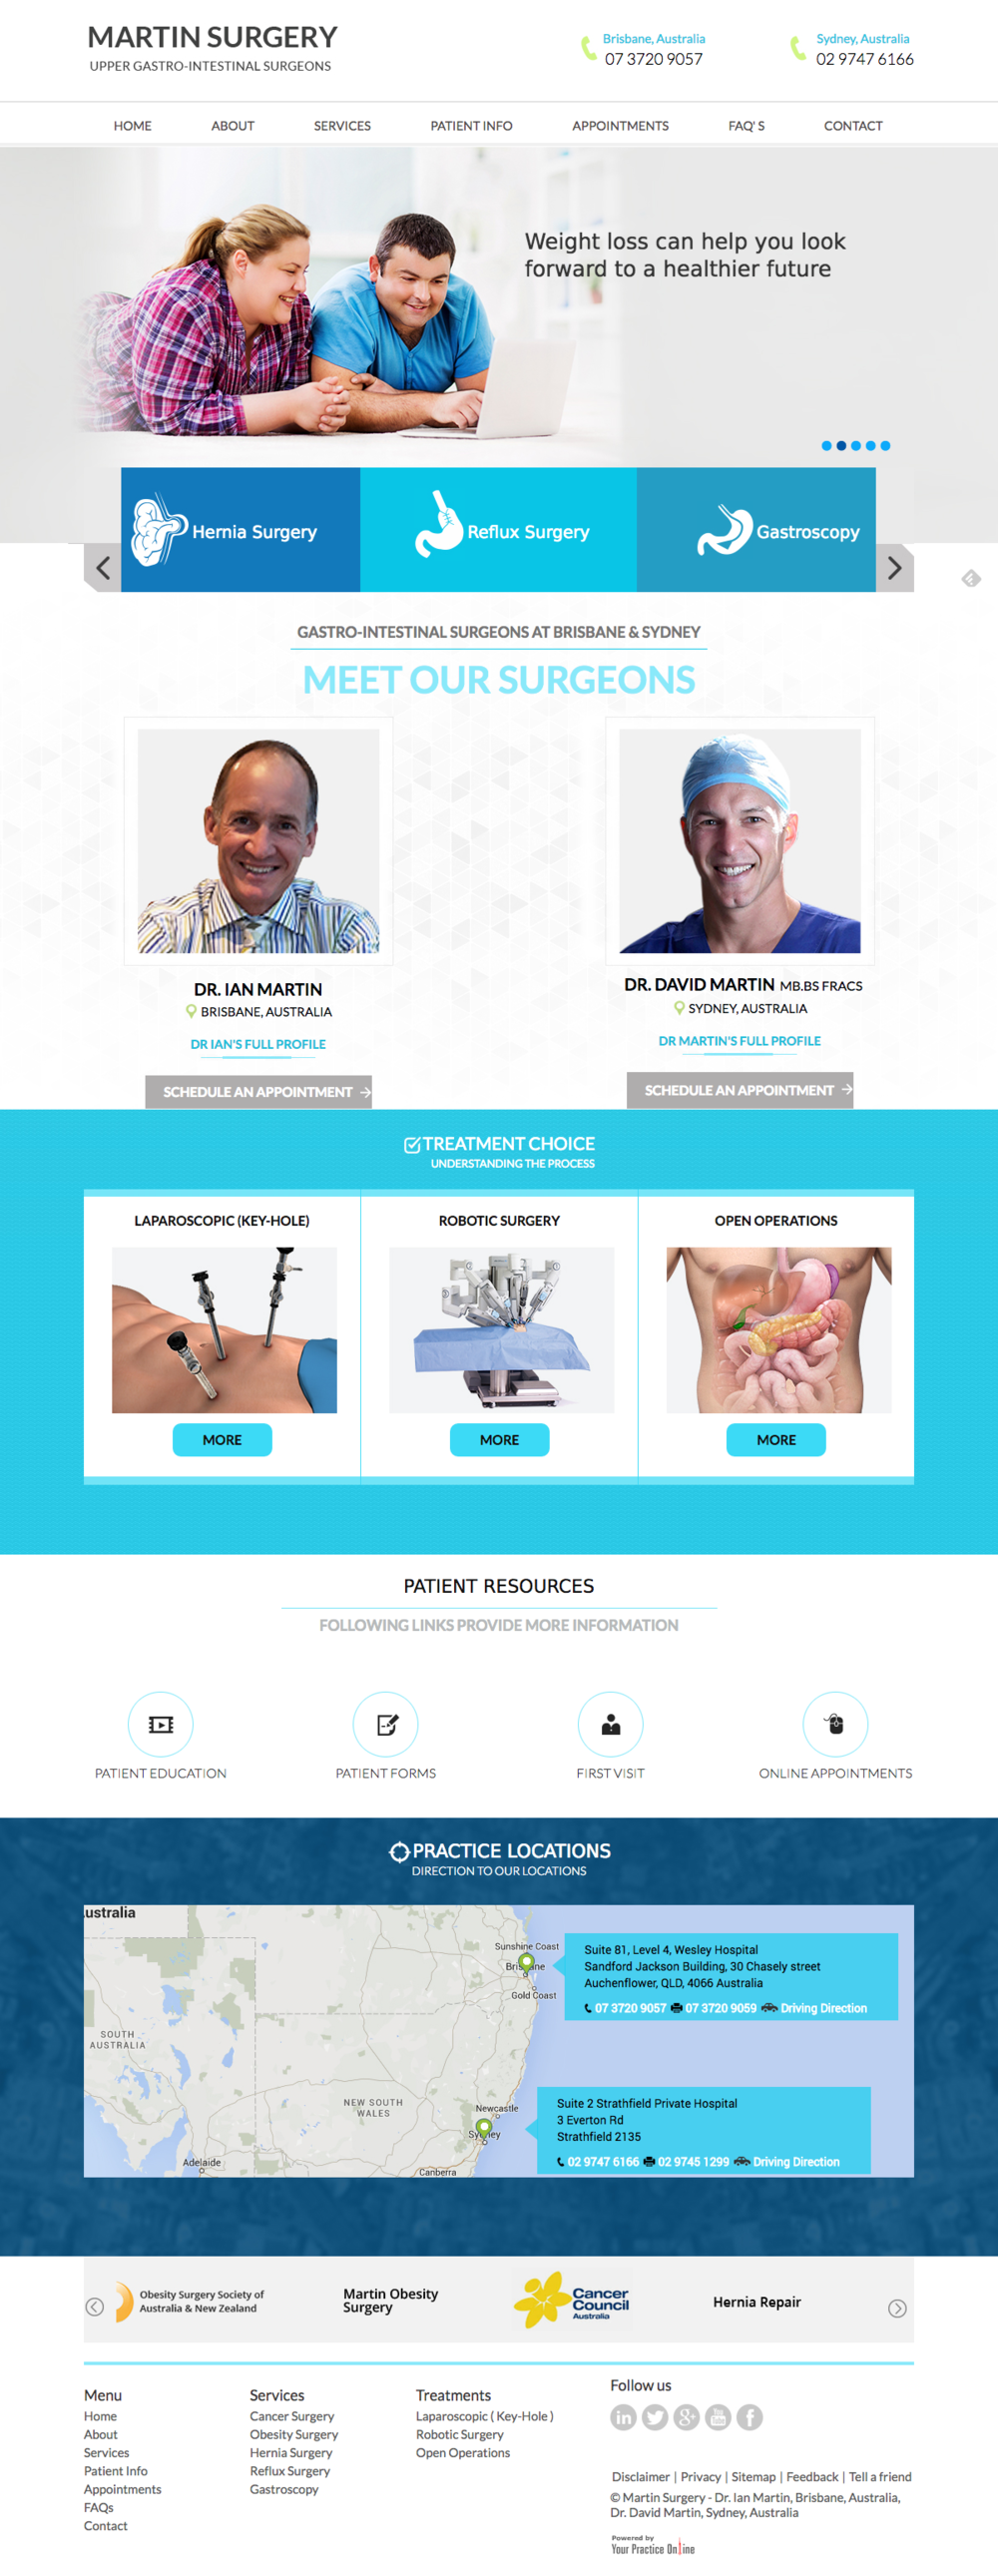 Martin Surgery Brisbane   Upper Gastro Intestinal Surgeons Sydney.png